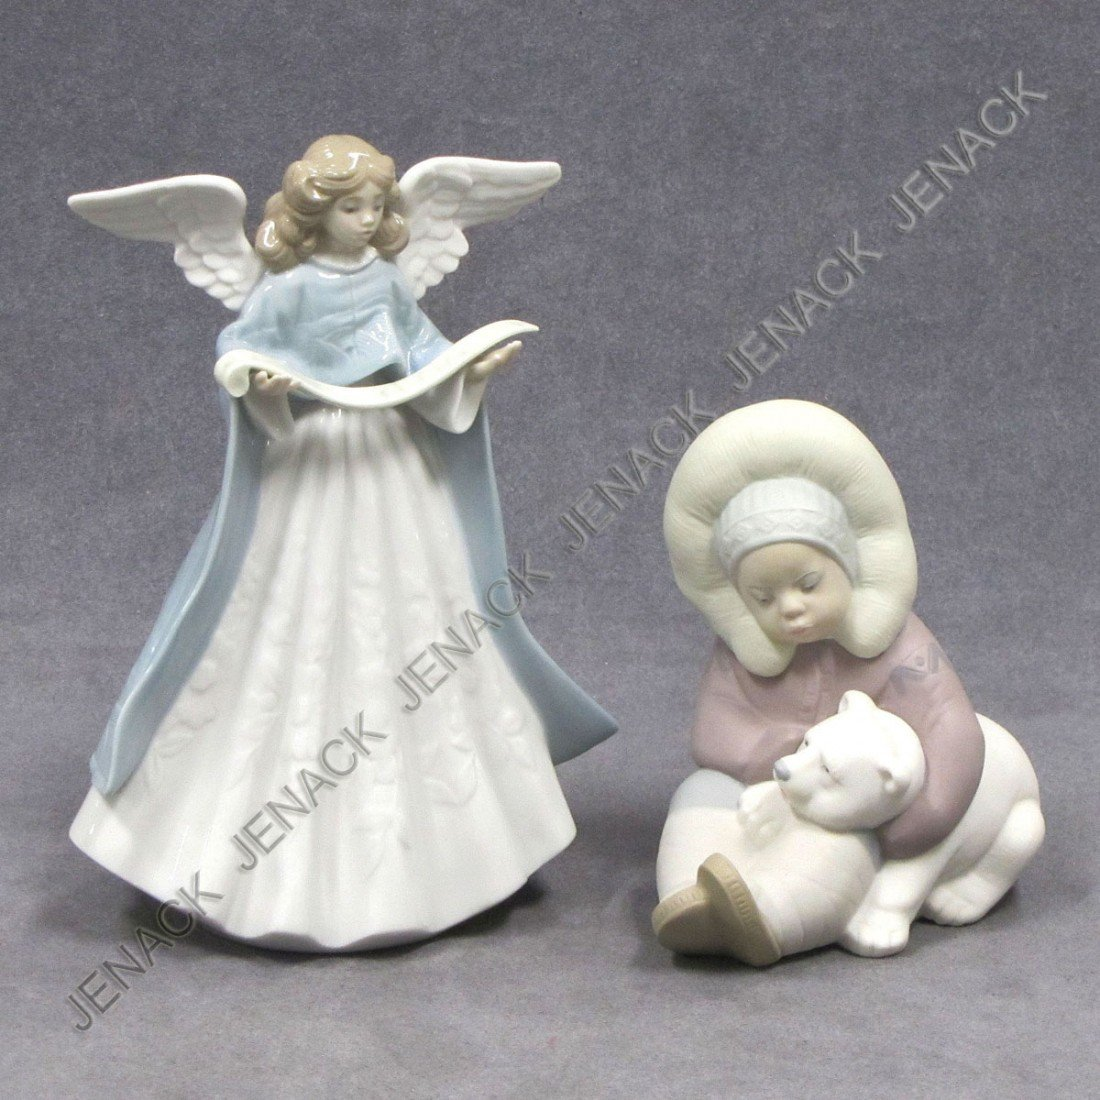 2: LOT (2) LLADRO PORCELAIN DECORATED FIGURES